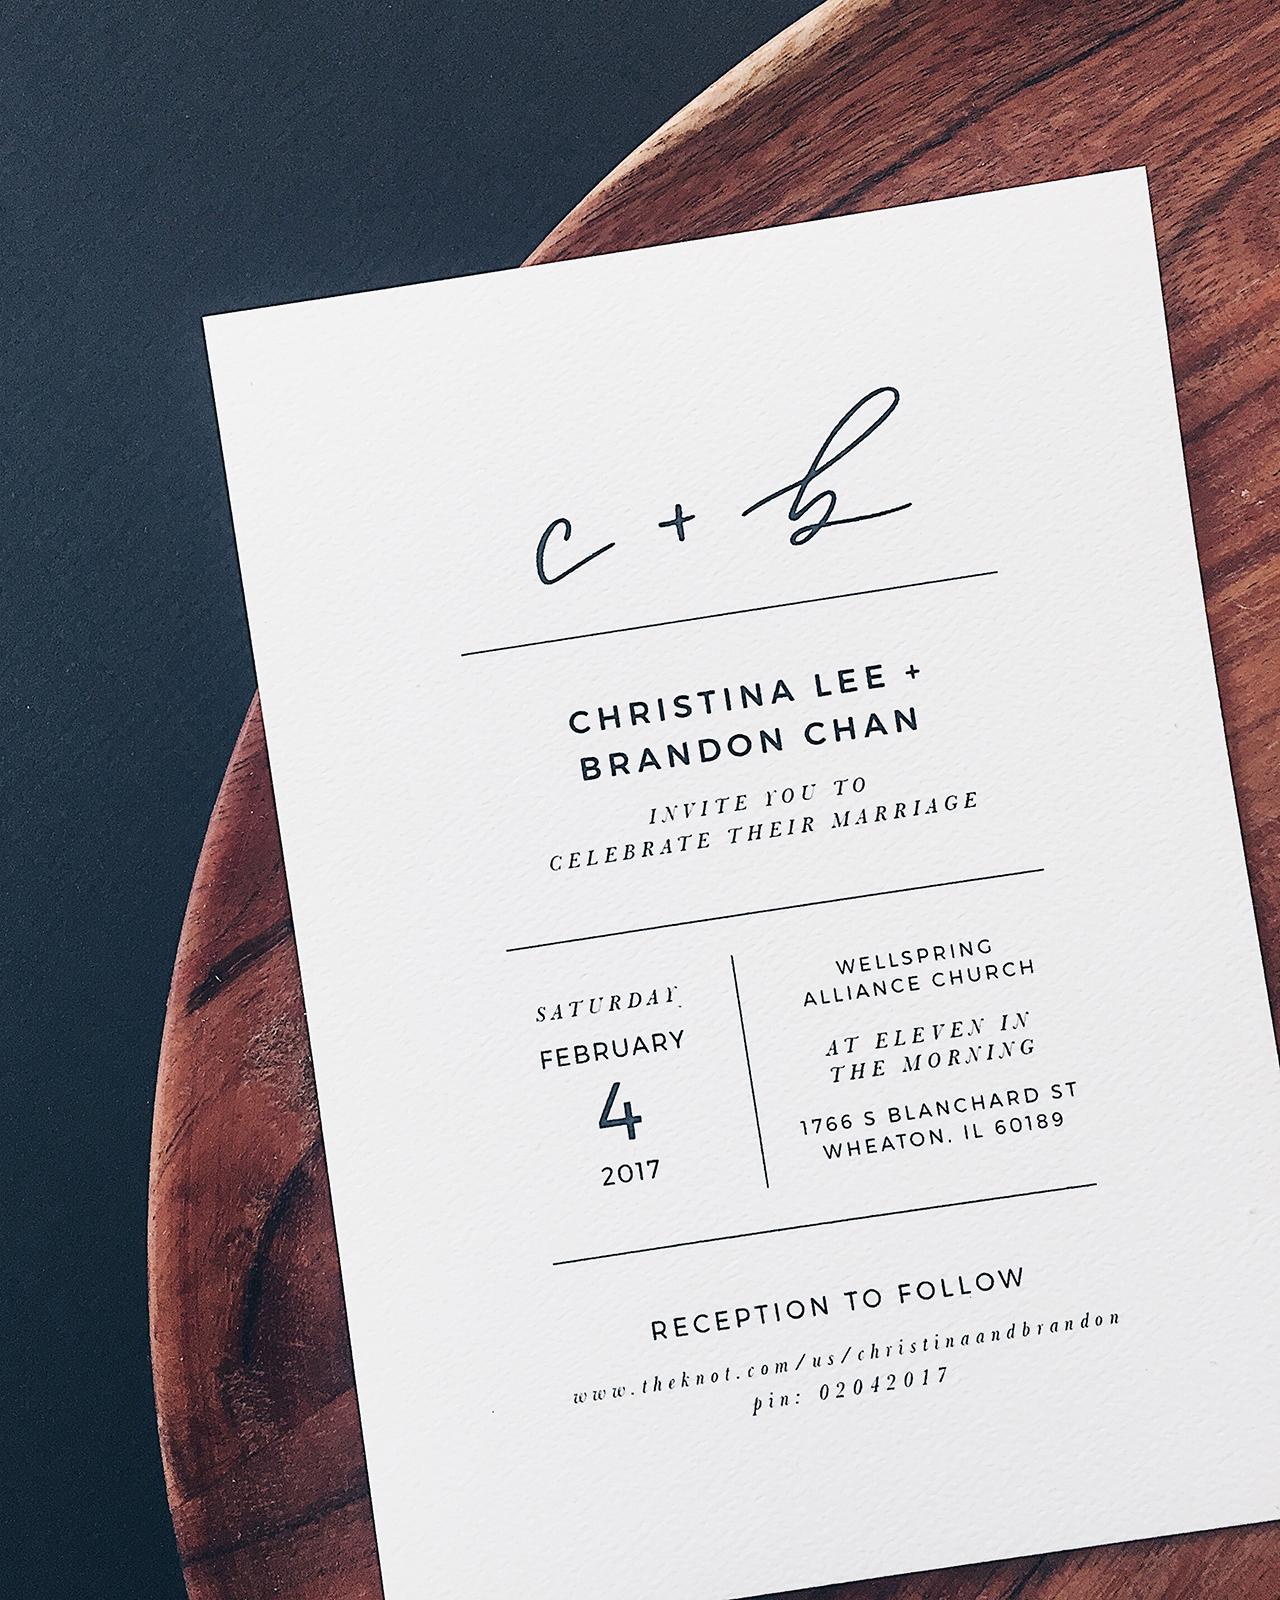 Minimalist black and white hand lettered wedding invitations minimalist black and white handlettered wedding invitations by grace niu stopboris Image collections